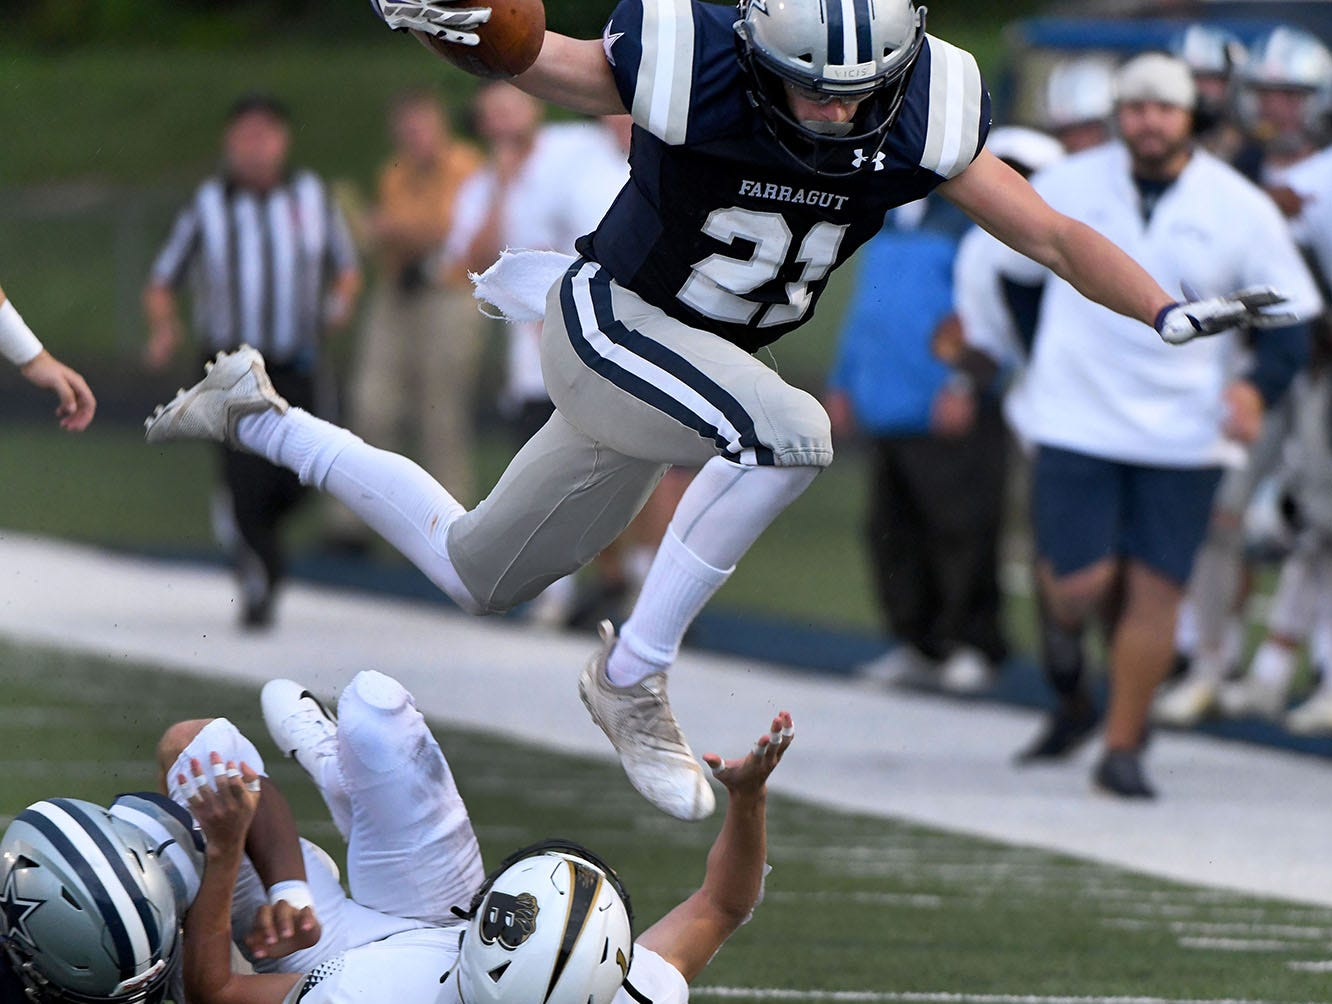 Farragut's Gabe Hensley (21) leaps over a Bradley Central defender during their game Friday, August 17, 2018 at Farragut High School.